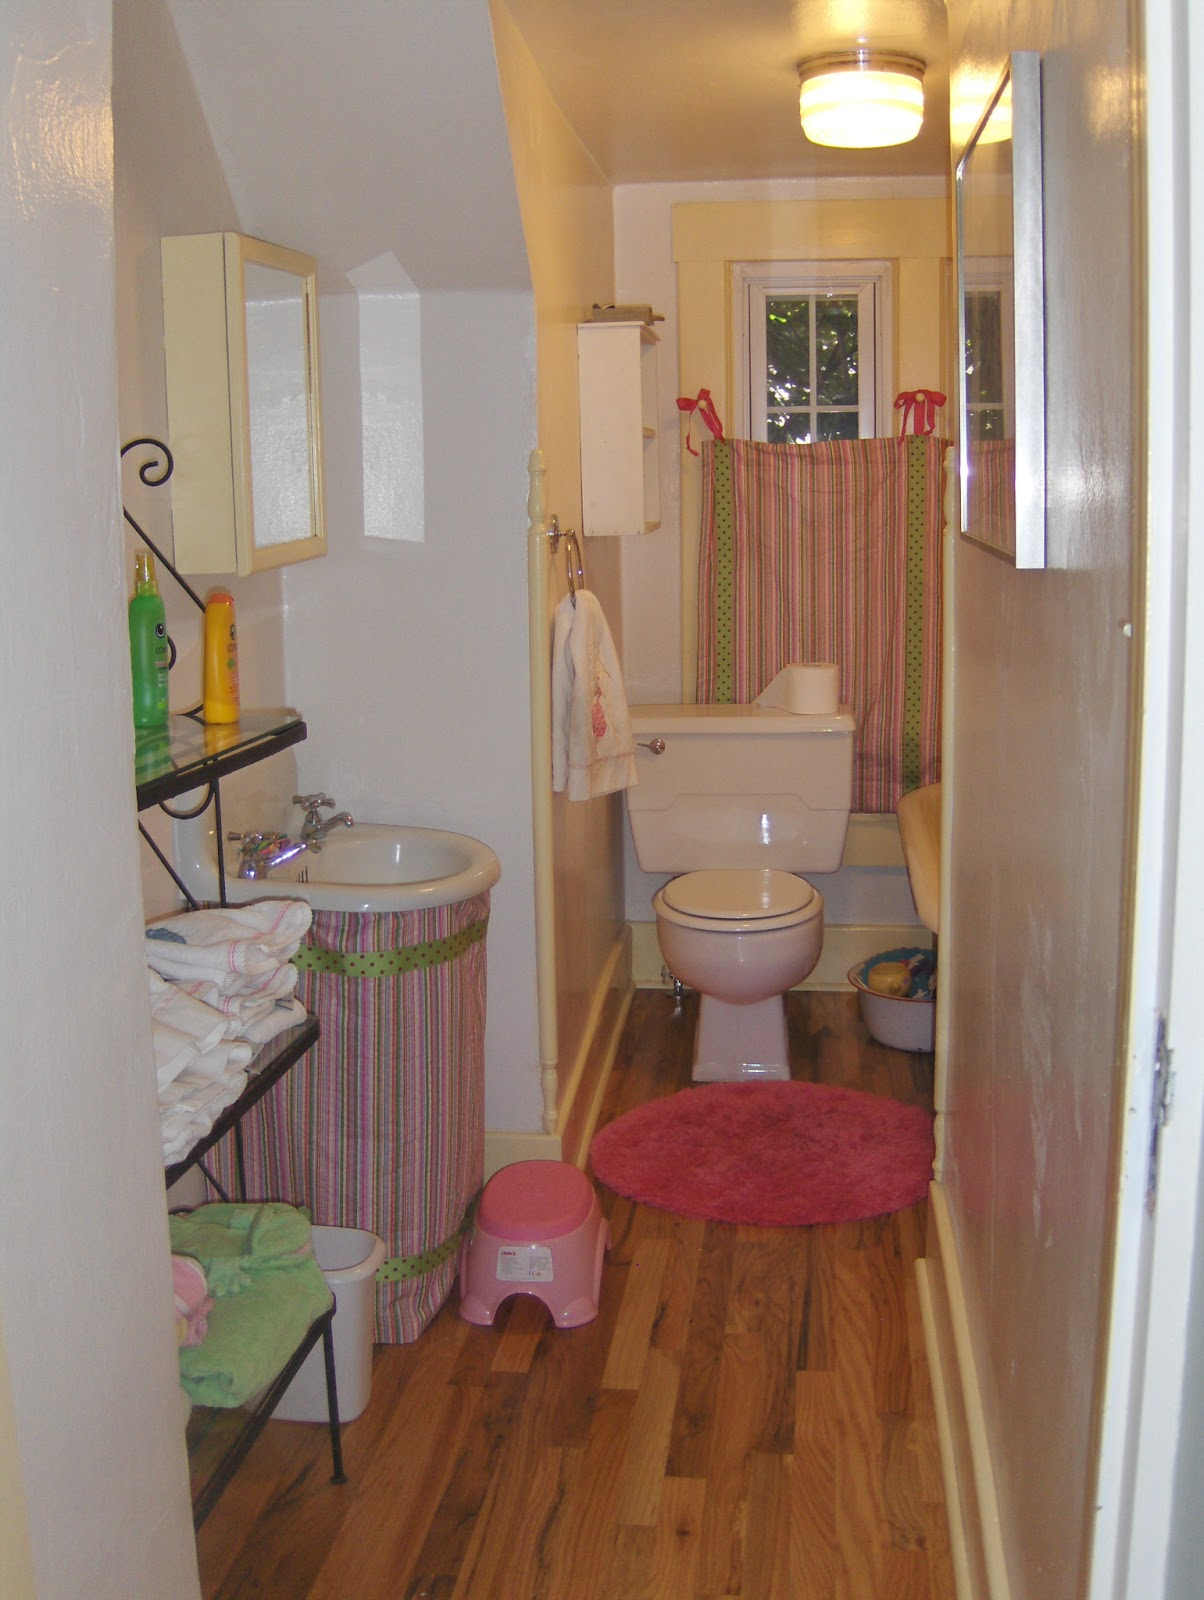 A marmie life very small bathroom remodel - Images of small bathroom remodels ...